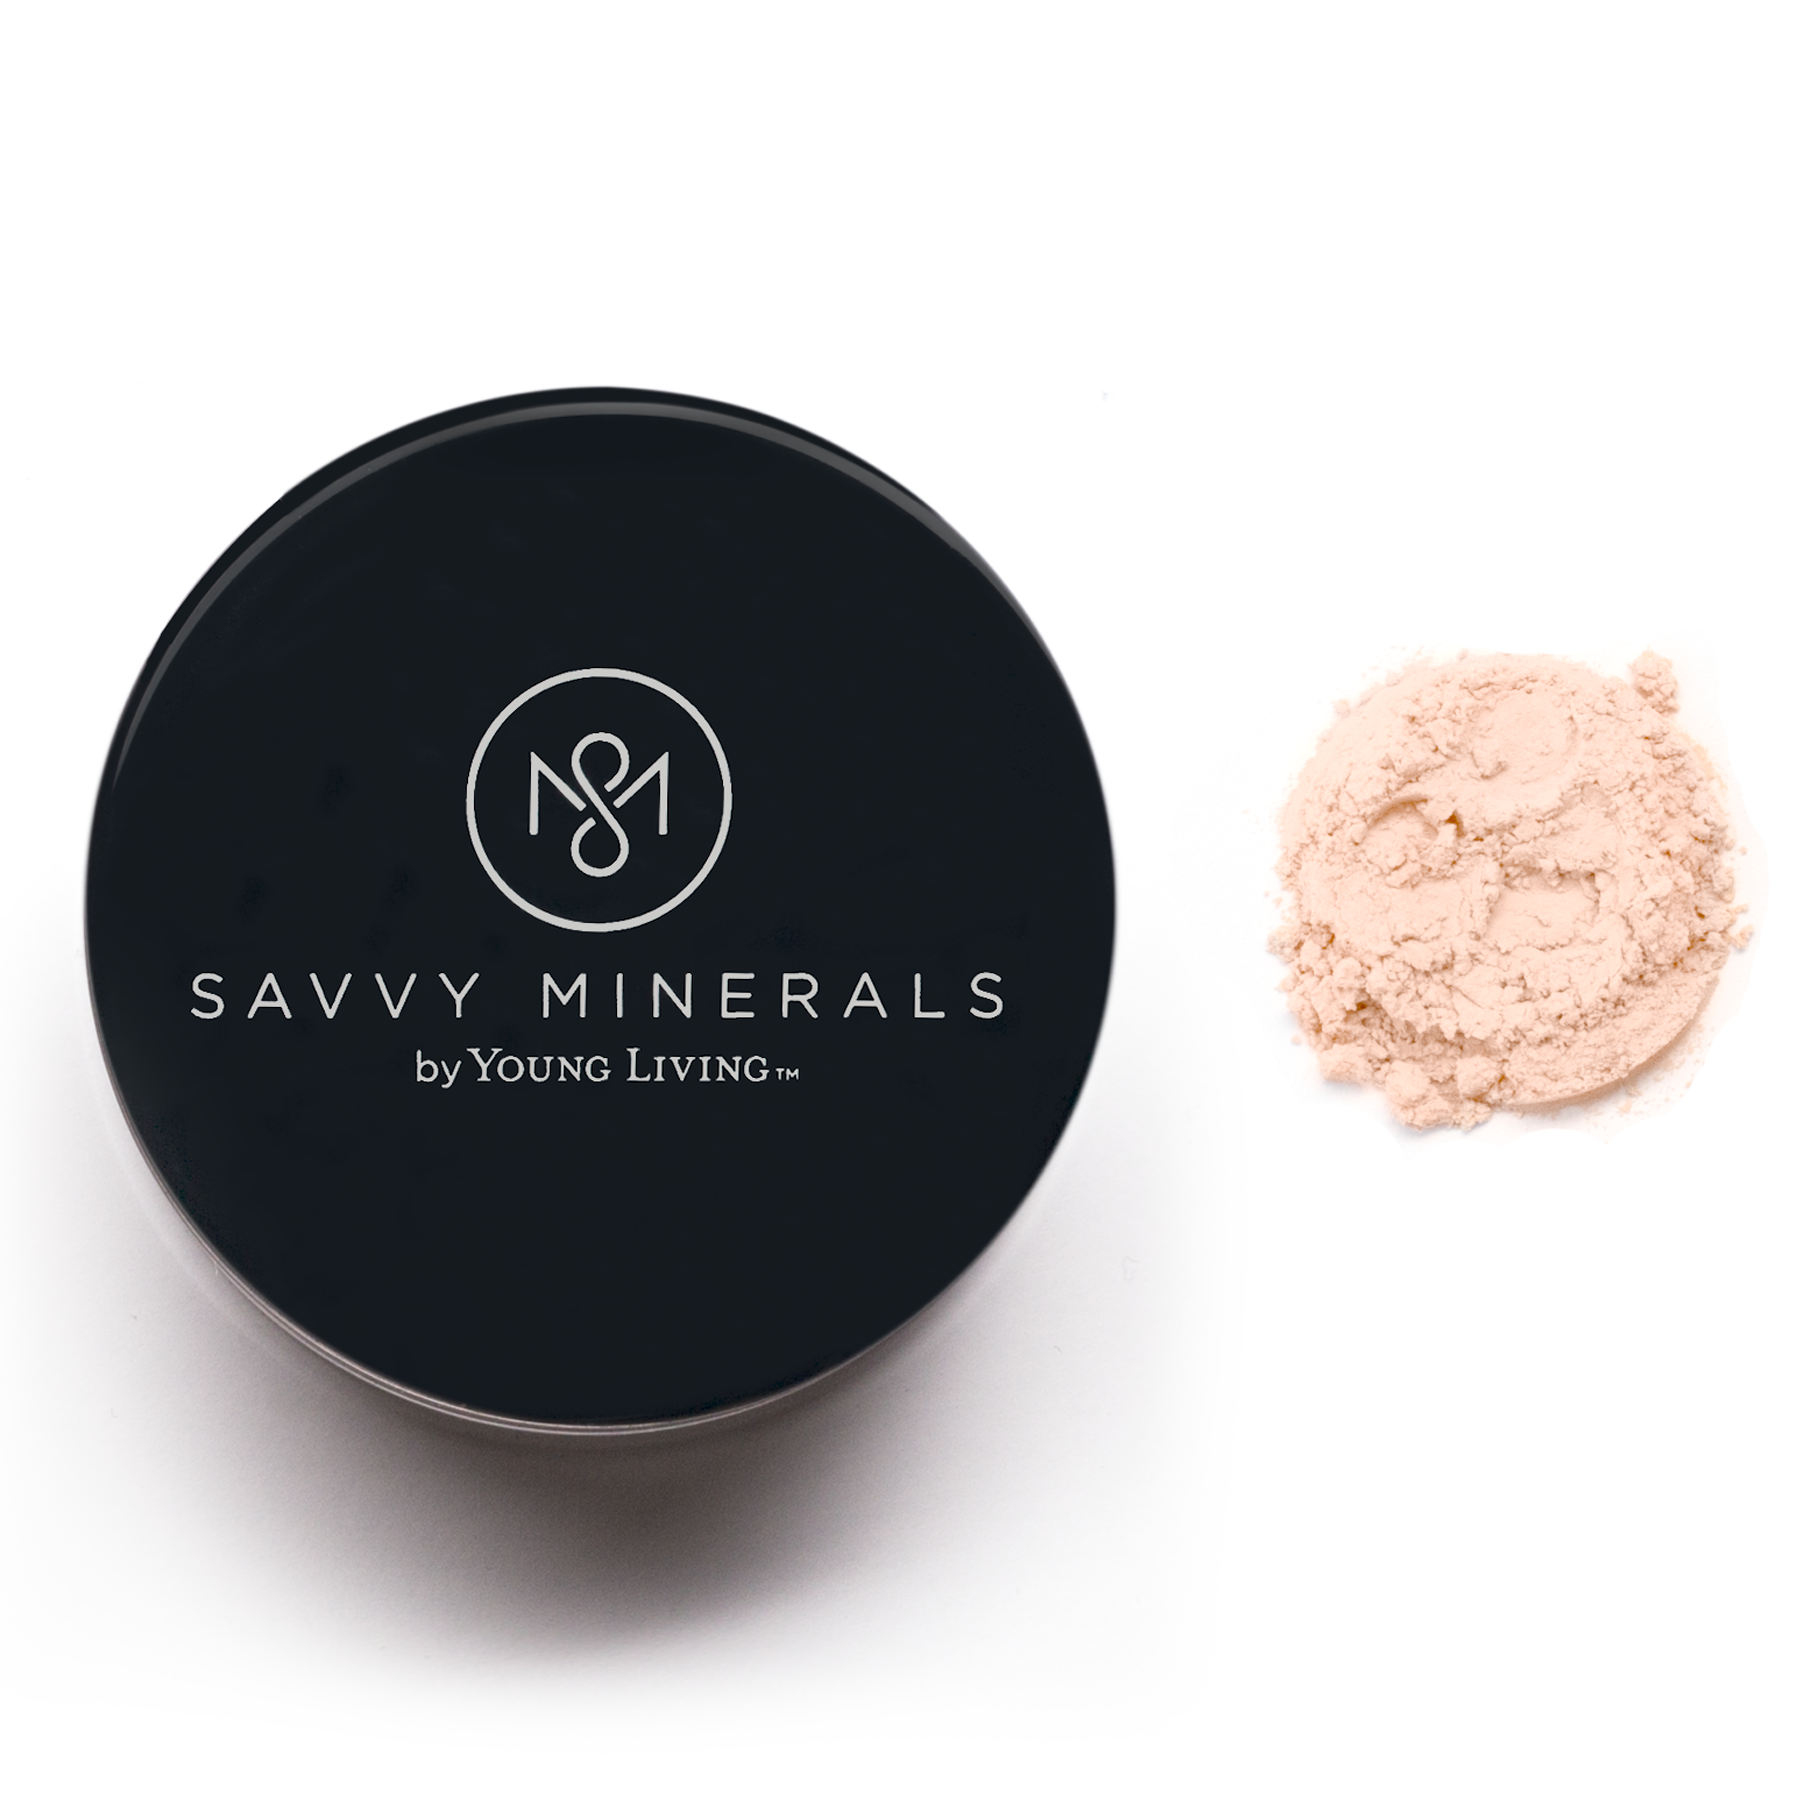 How to apply makeup with help from Savvy Minerals! Savvy